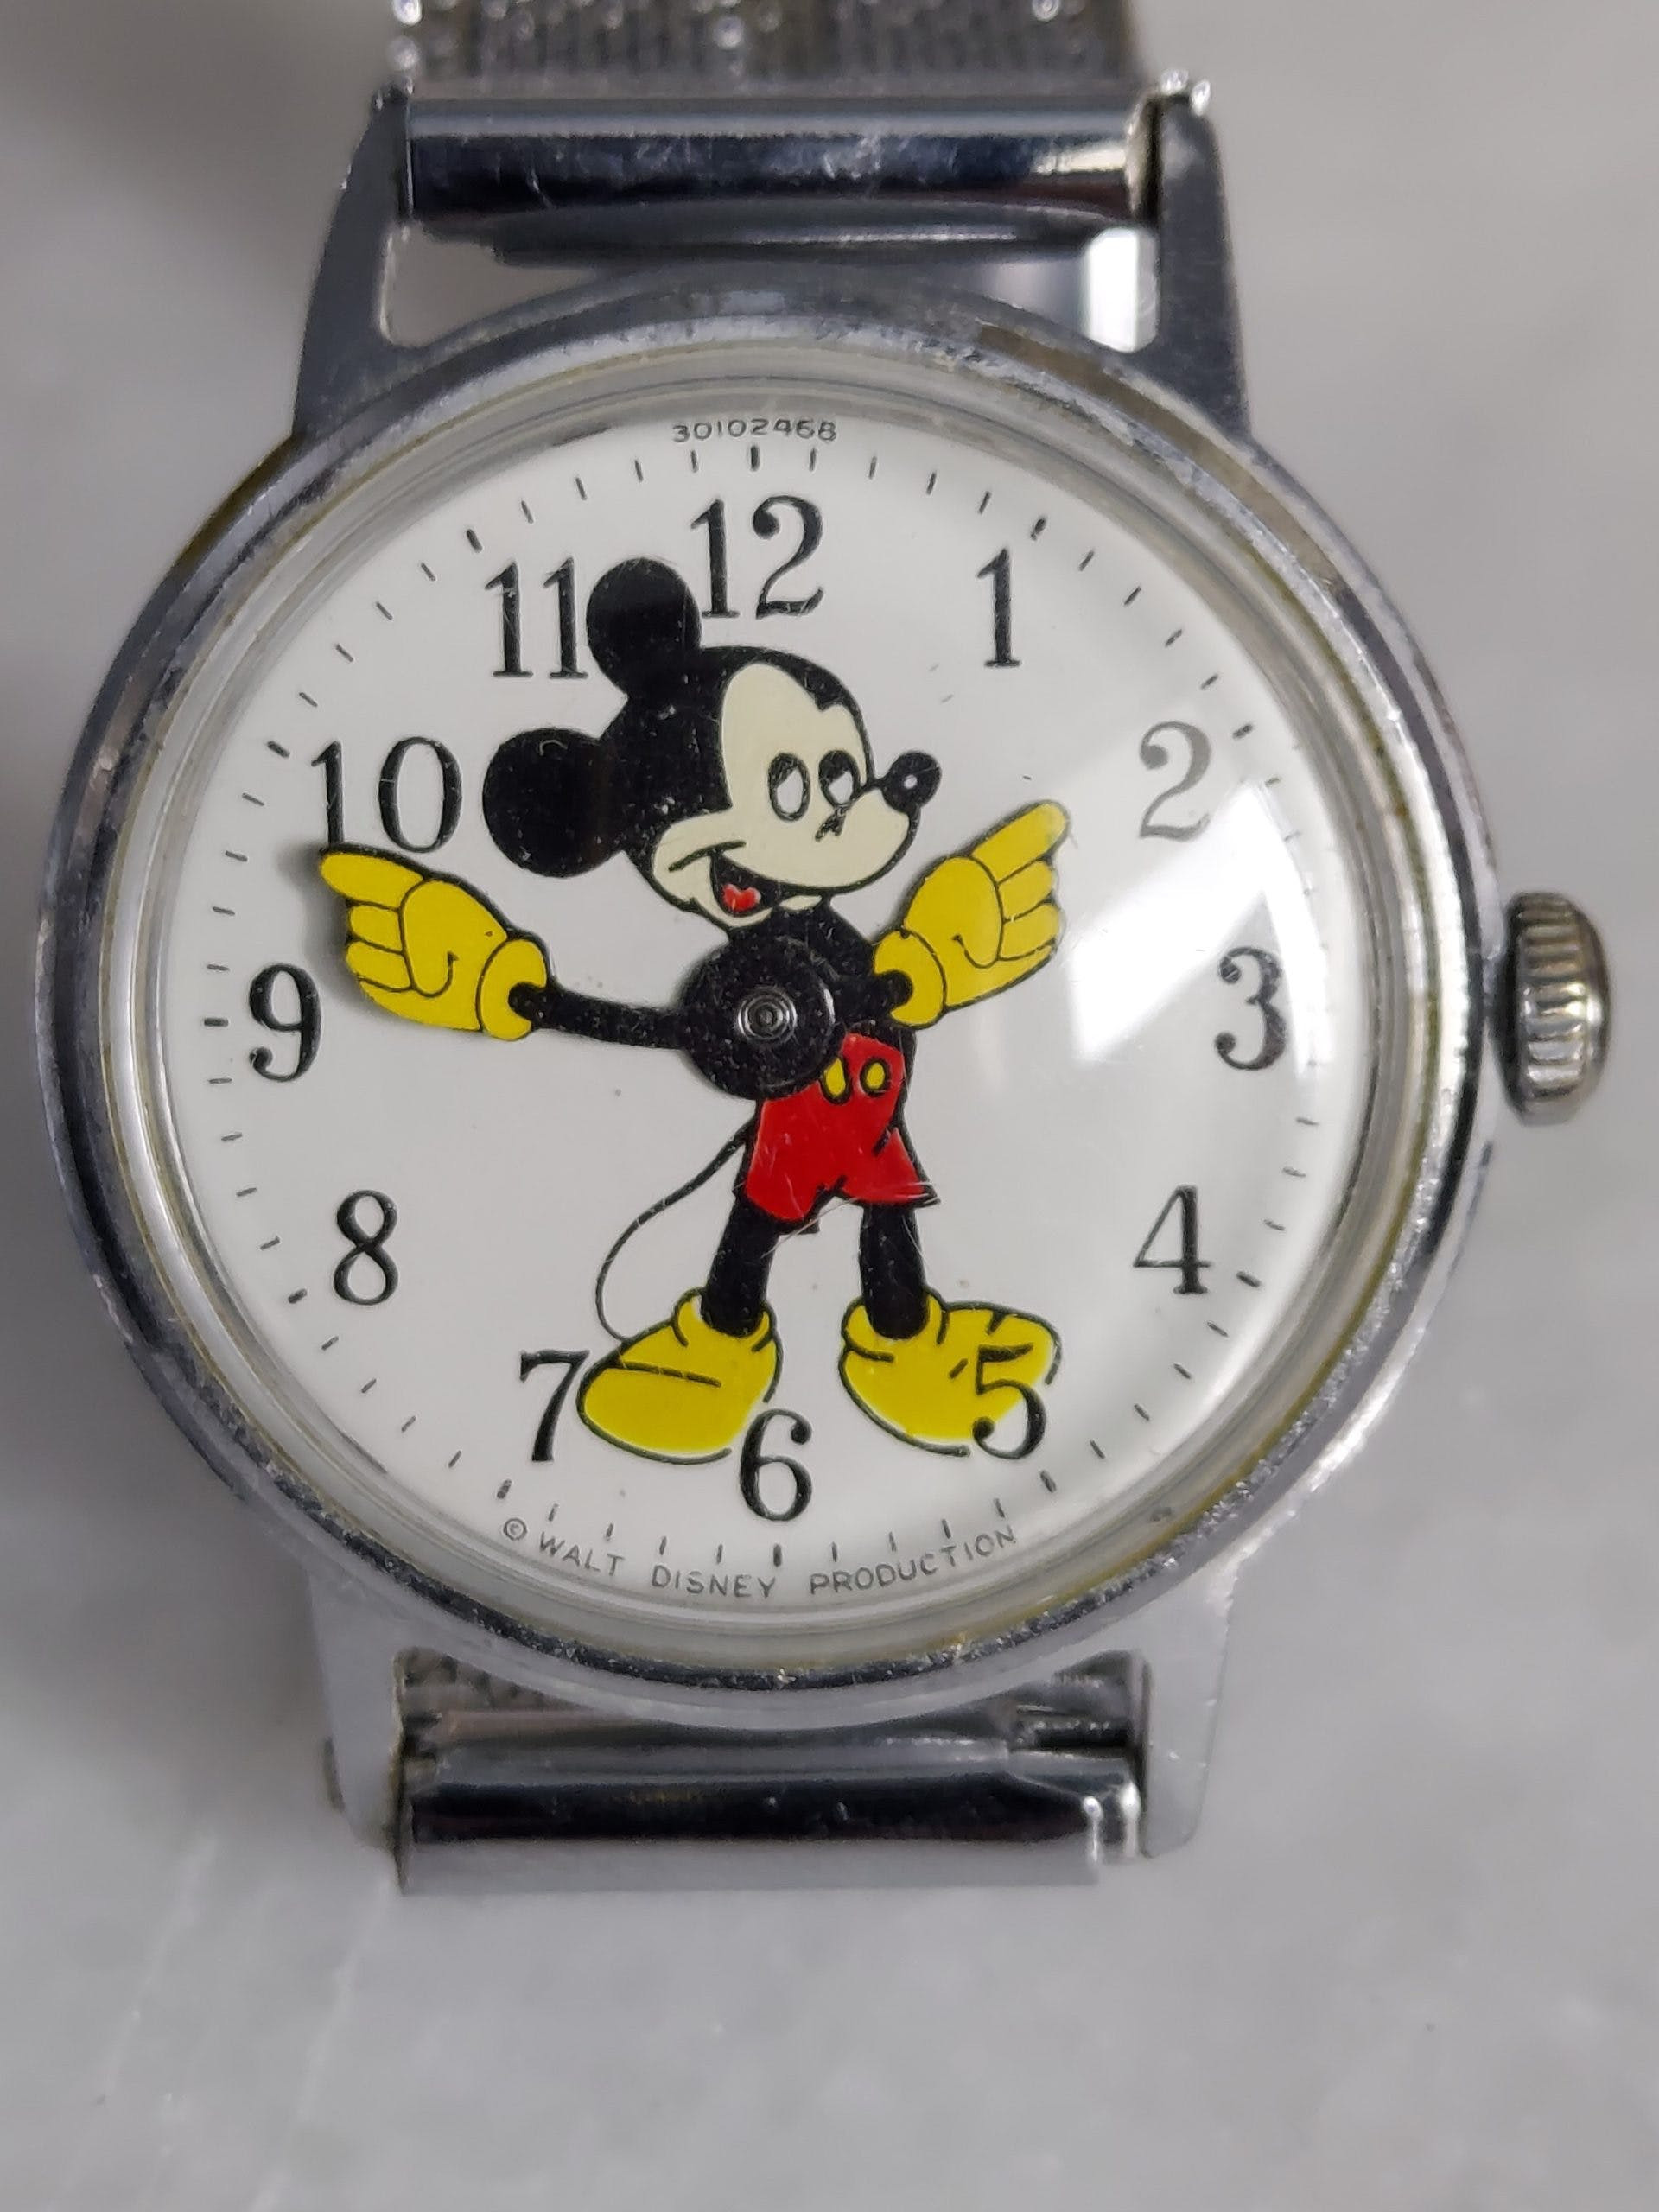 Timex Mickey Mouse watch, around 1970